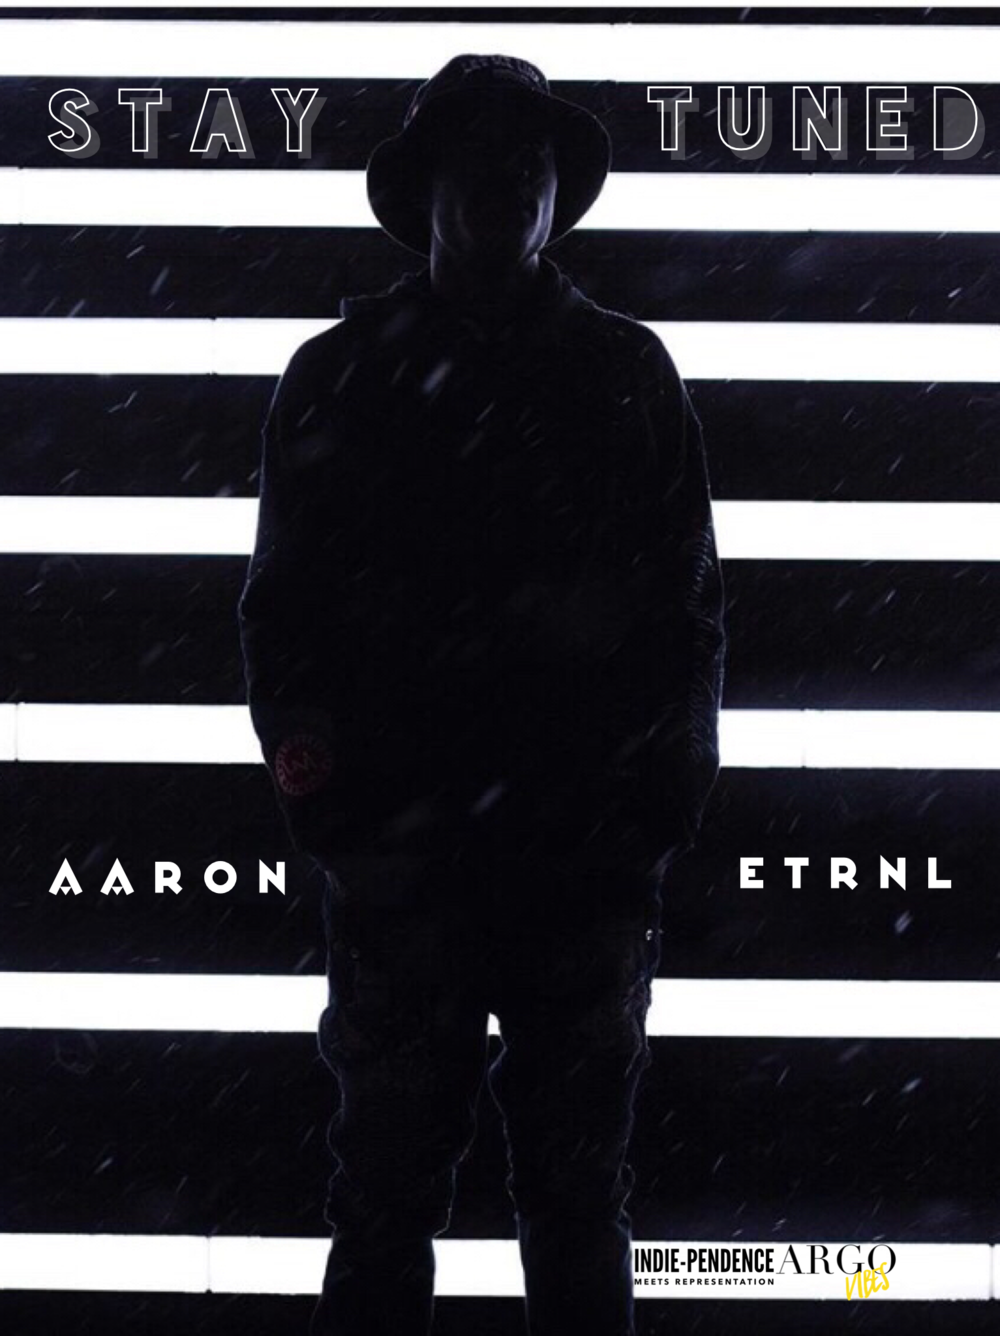 Aaron ETRNL - Stay Tuned Visual  (All Rights Reserved 2018).PNG